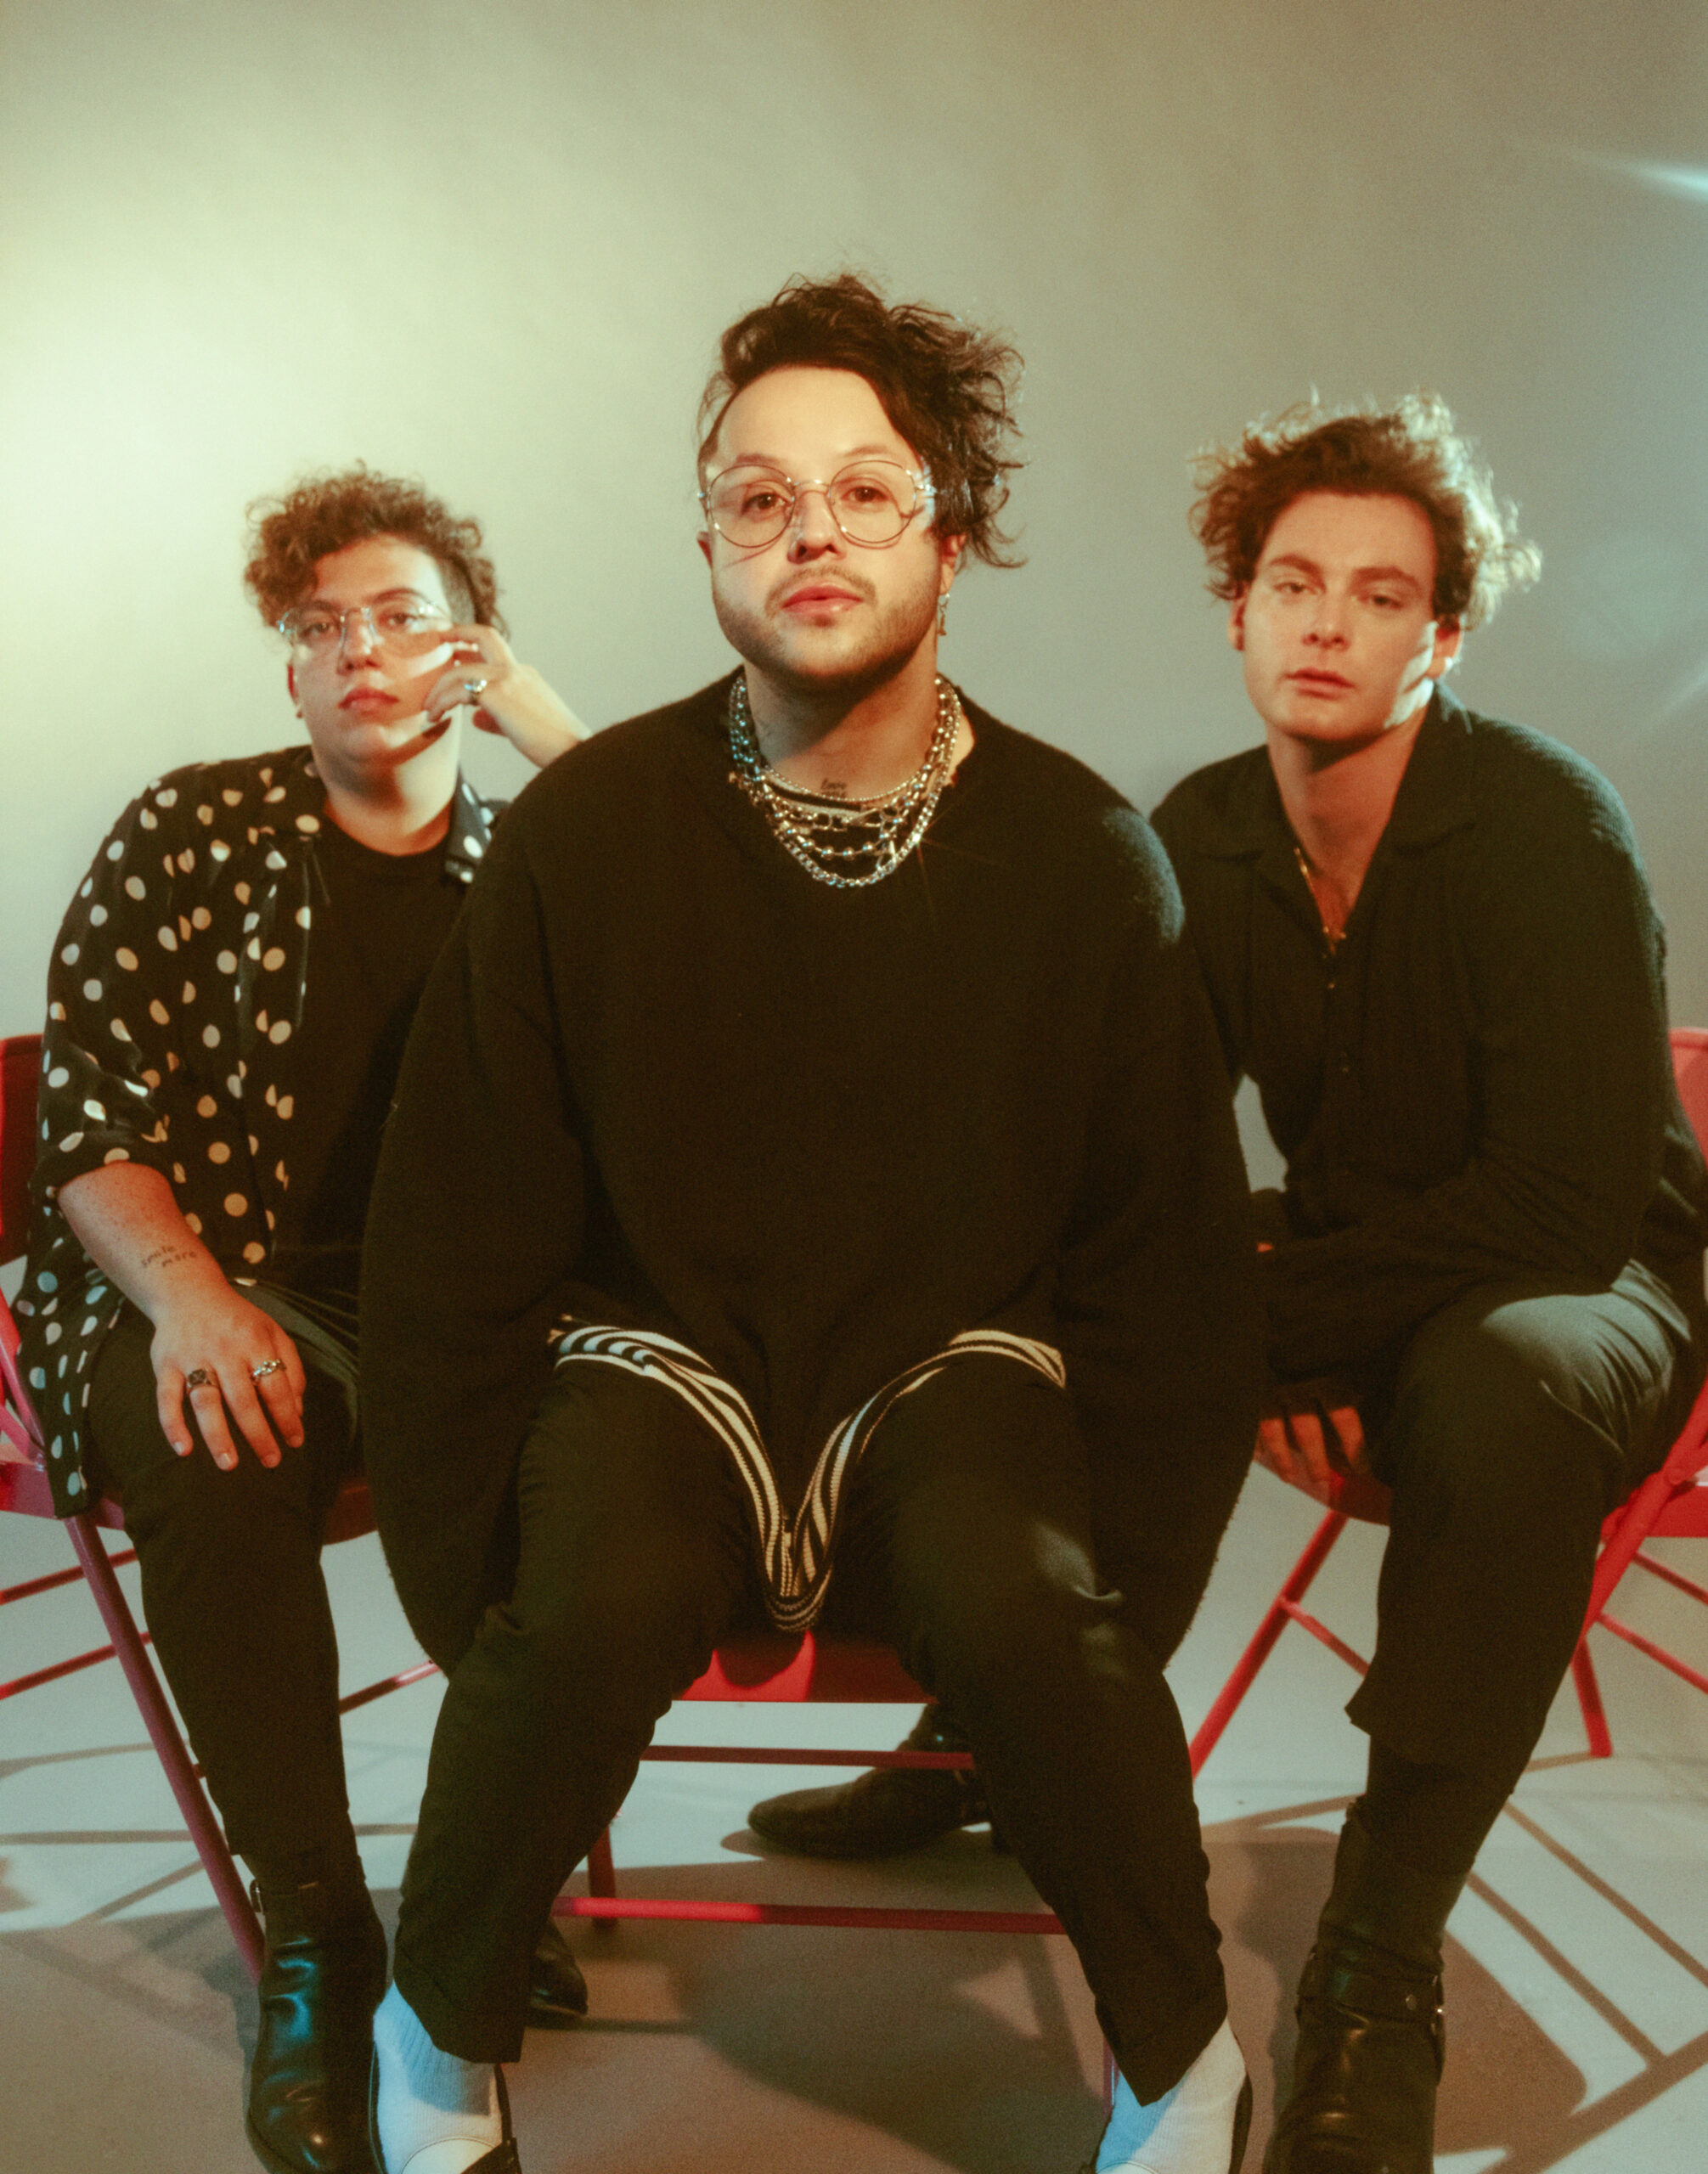 Lovelytheband, Sir Sly announce co-headlining North American tour